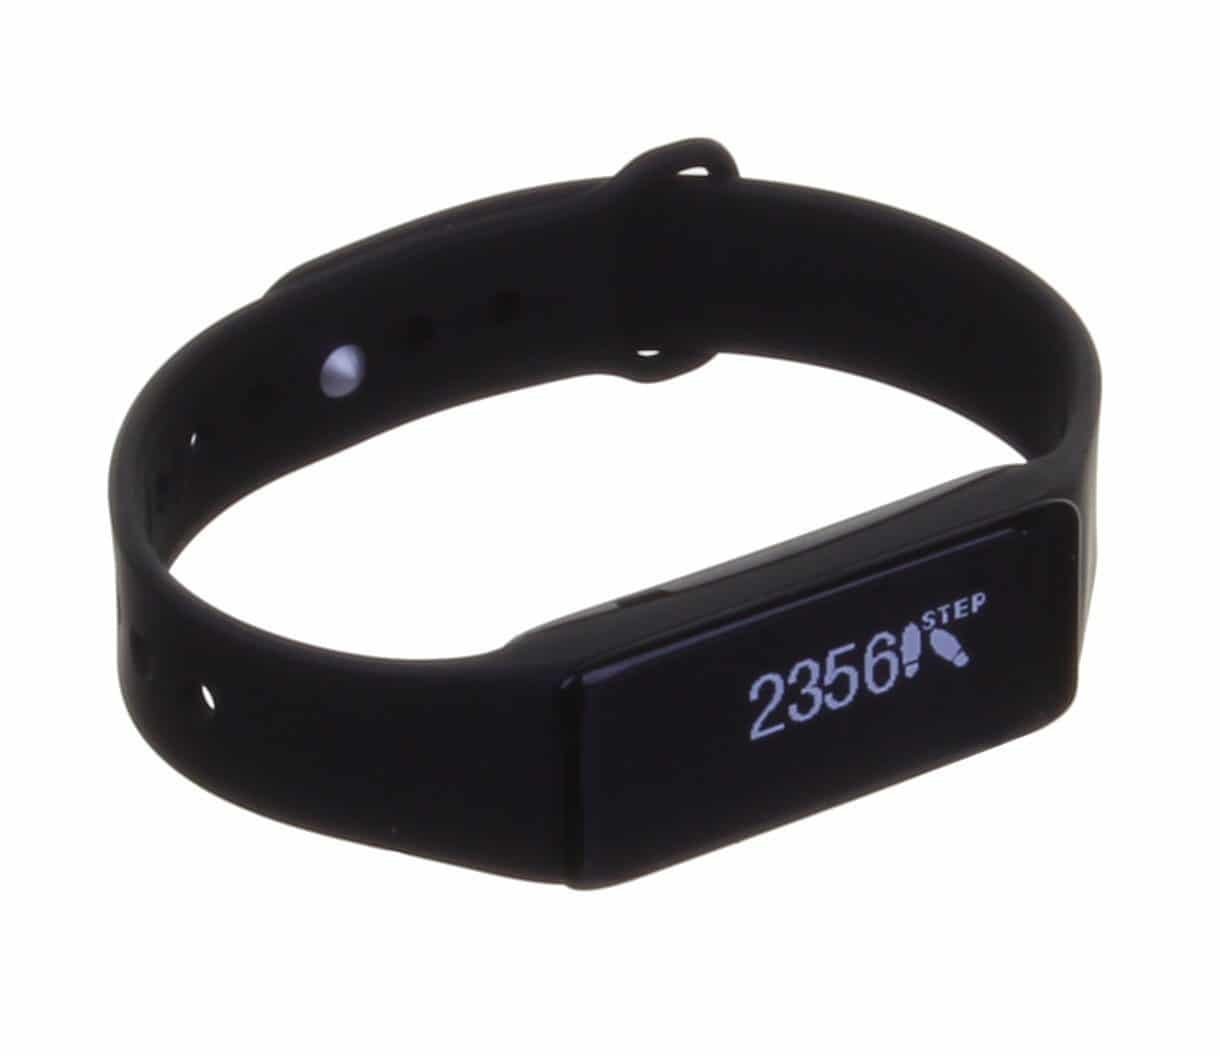 518Lv8Q4CnL. SL1220  - Review: Archon Touch, a new fitness tracker for those on a budget